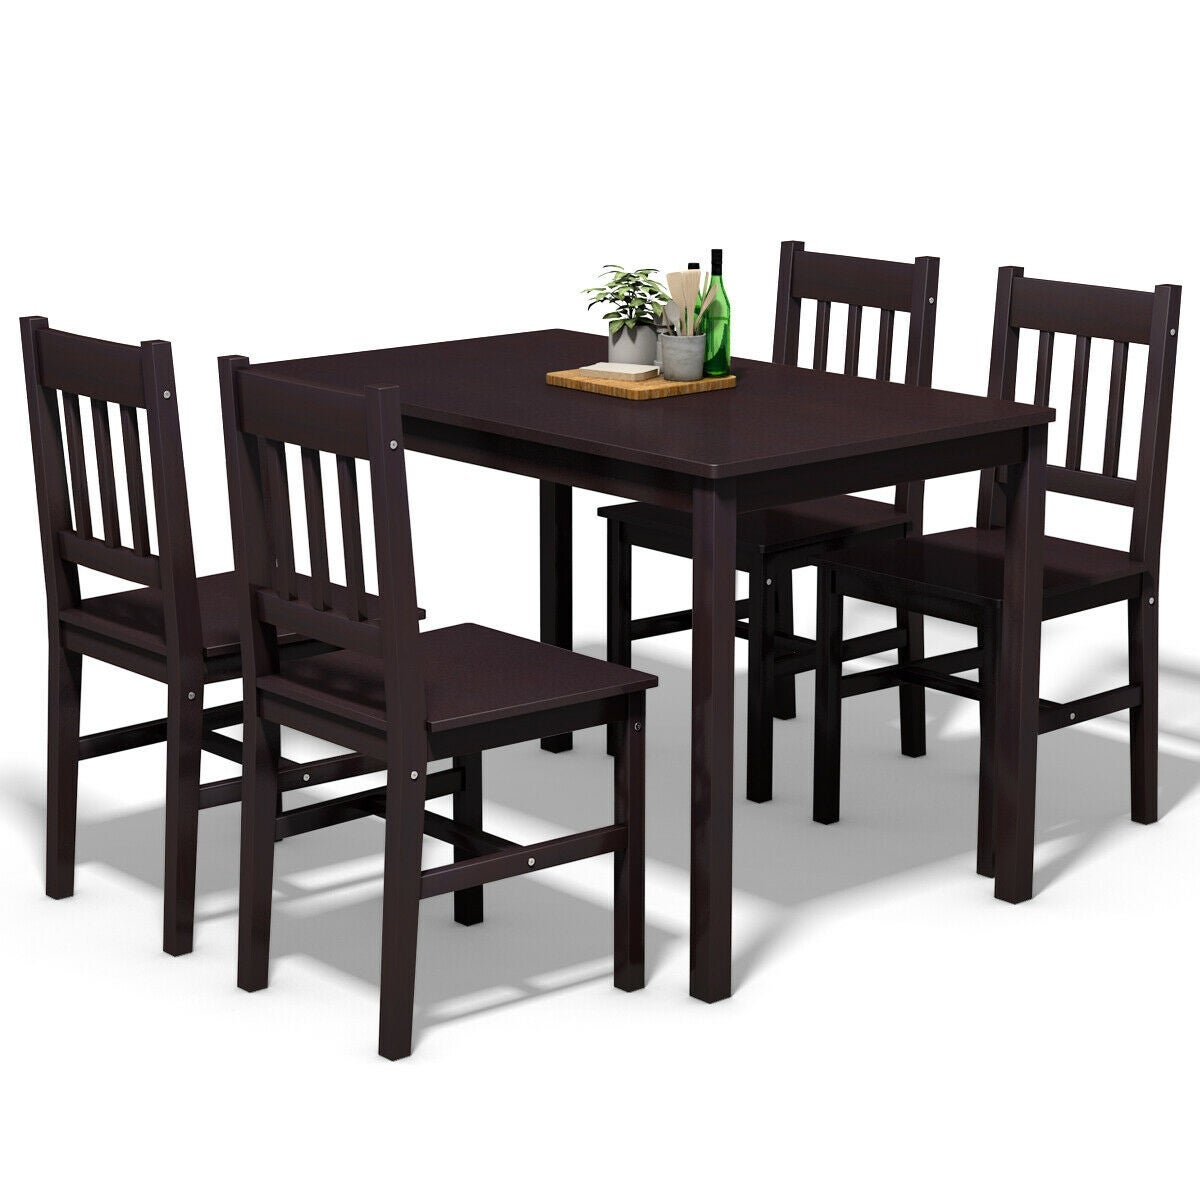 5 Piece Dining Table Set 4 Chairs Wood